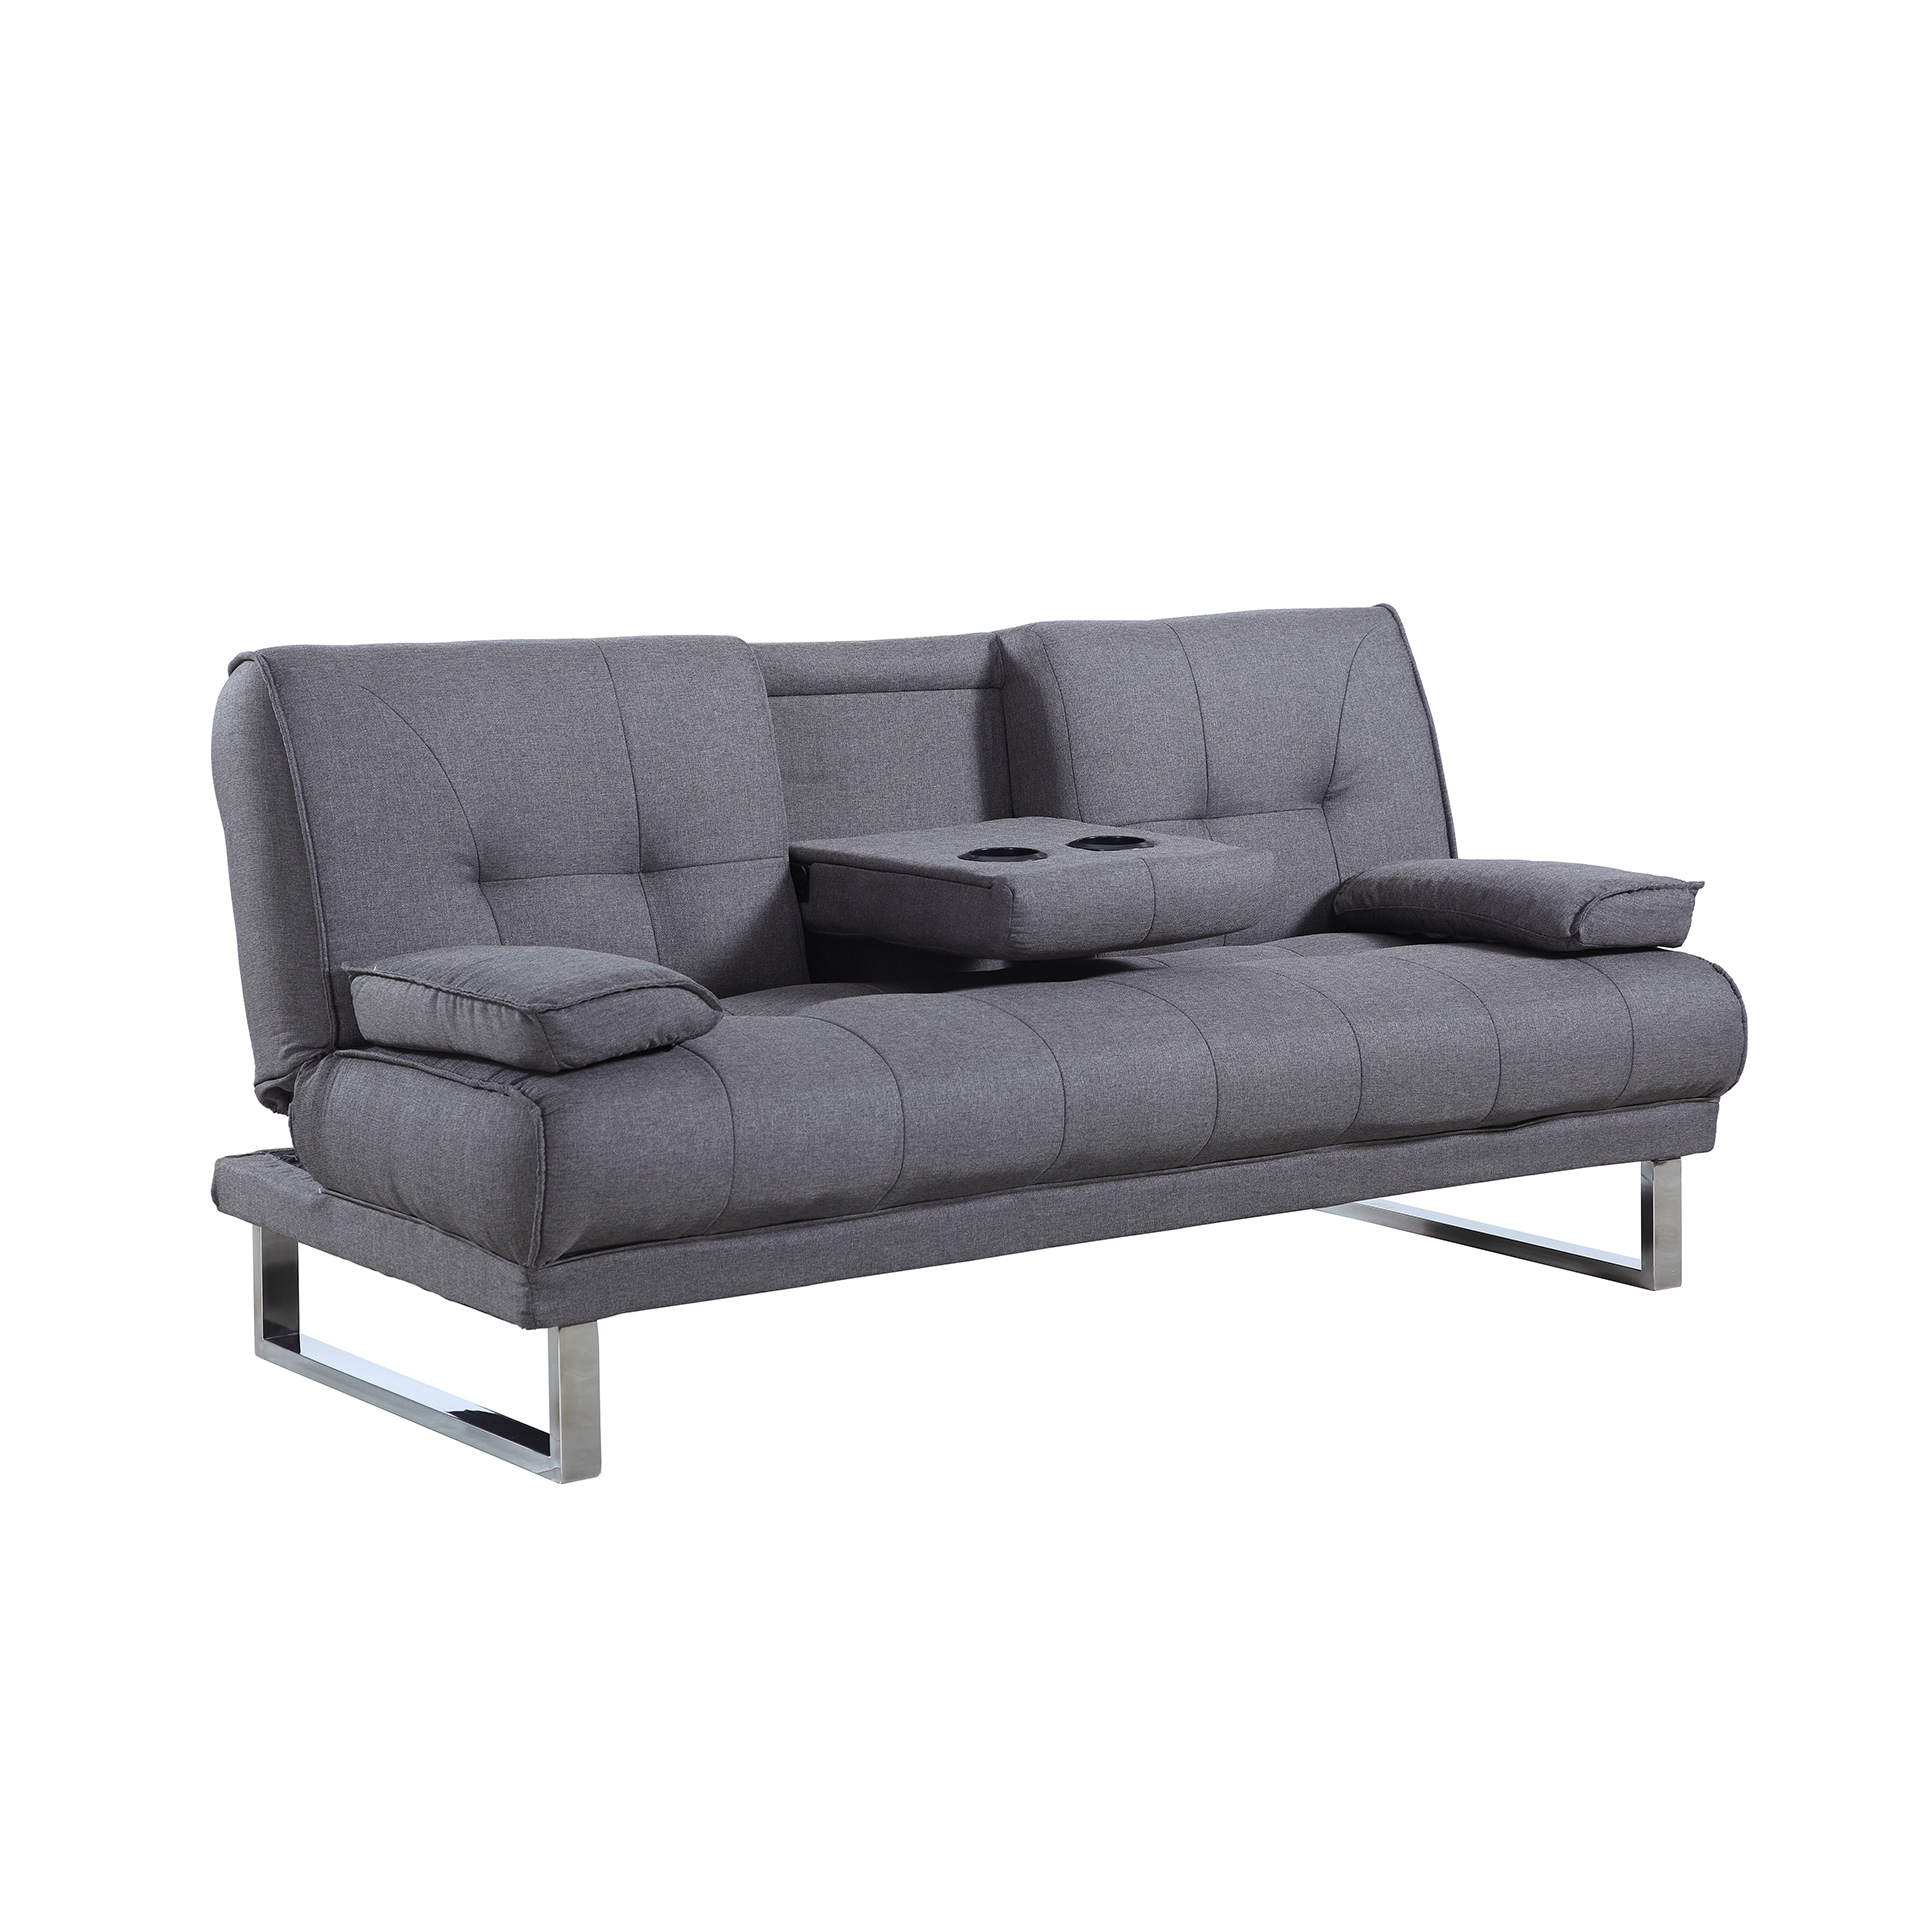 Sofa with cup holders homelegance marianna reclining sofa with center Loveseat with cup holders